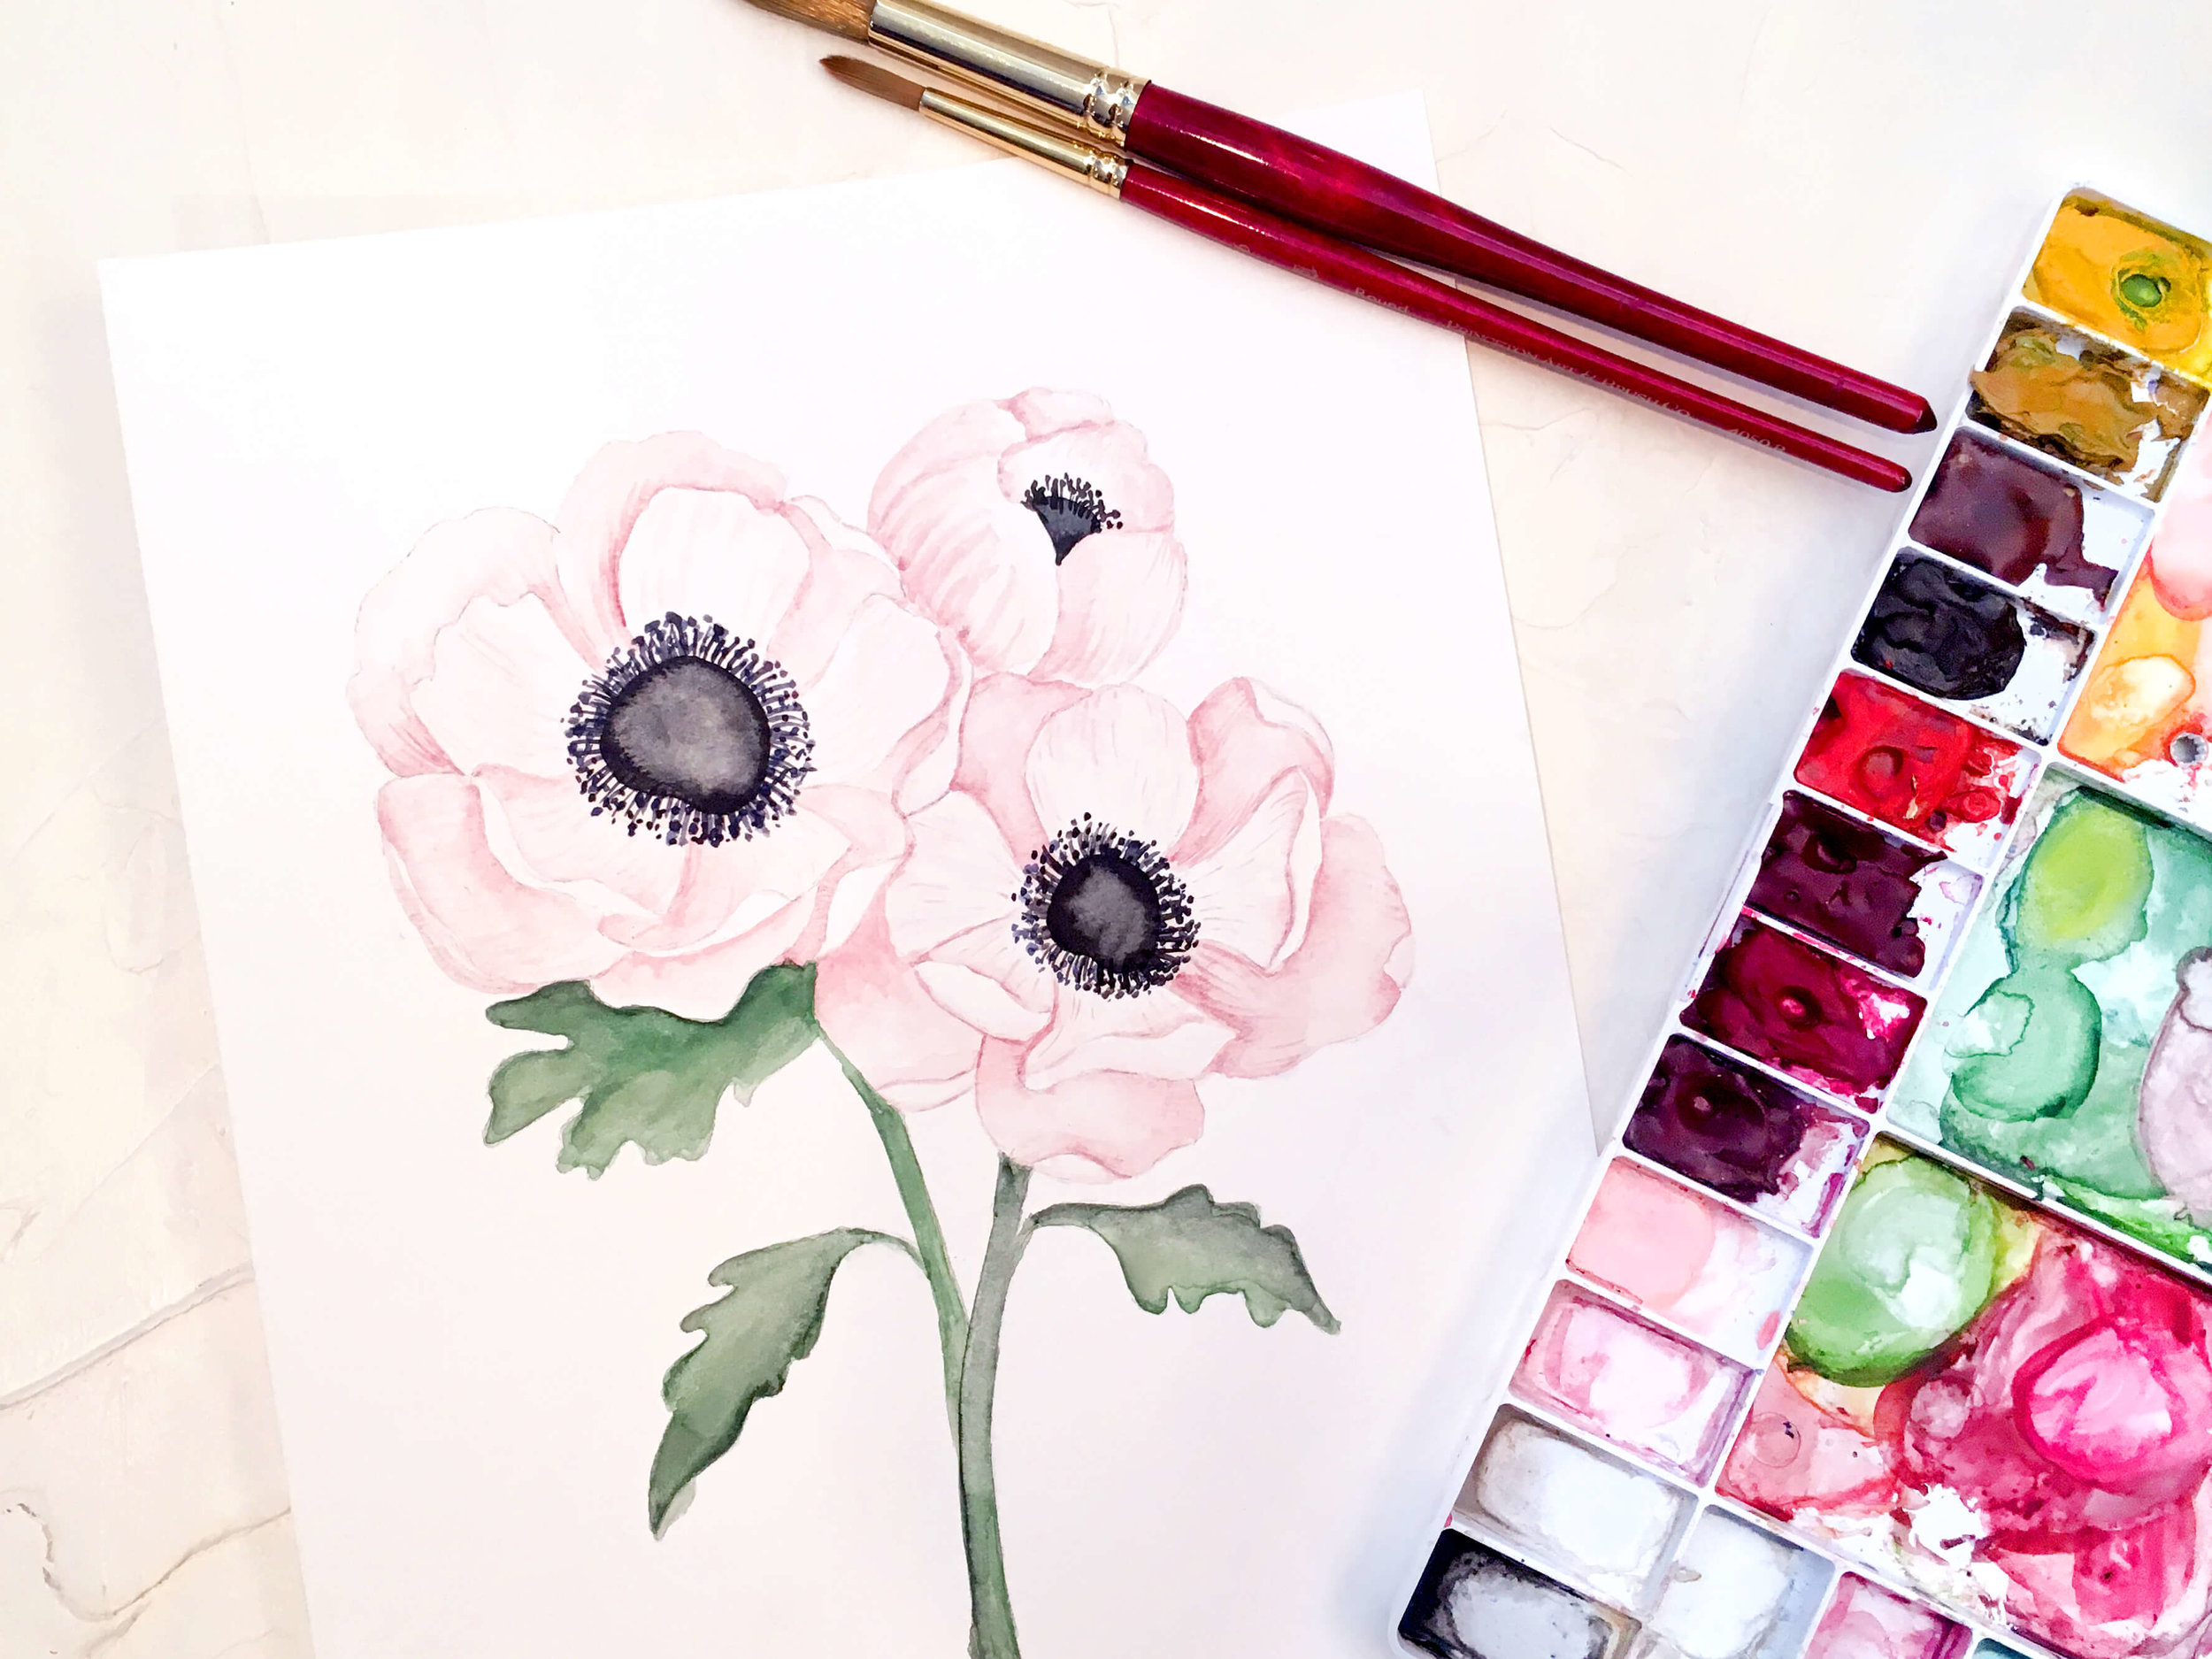 Watercolor/Illustrations - Our watercolors and illustrations are personalized to match your theme, venue, bouquet, etc. These are unique to you, so we won't ever re-use or repurpose them.